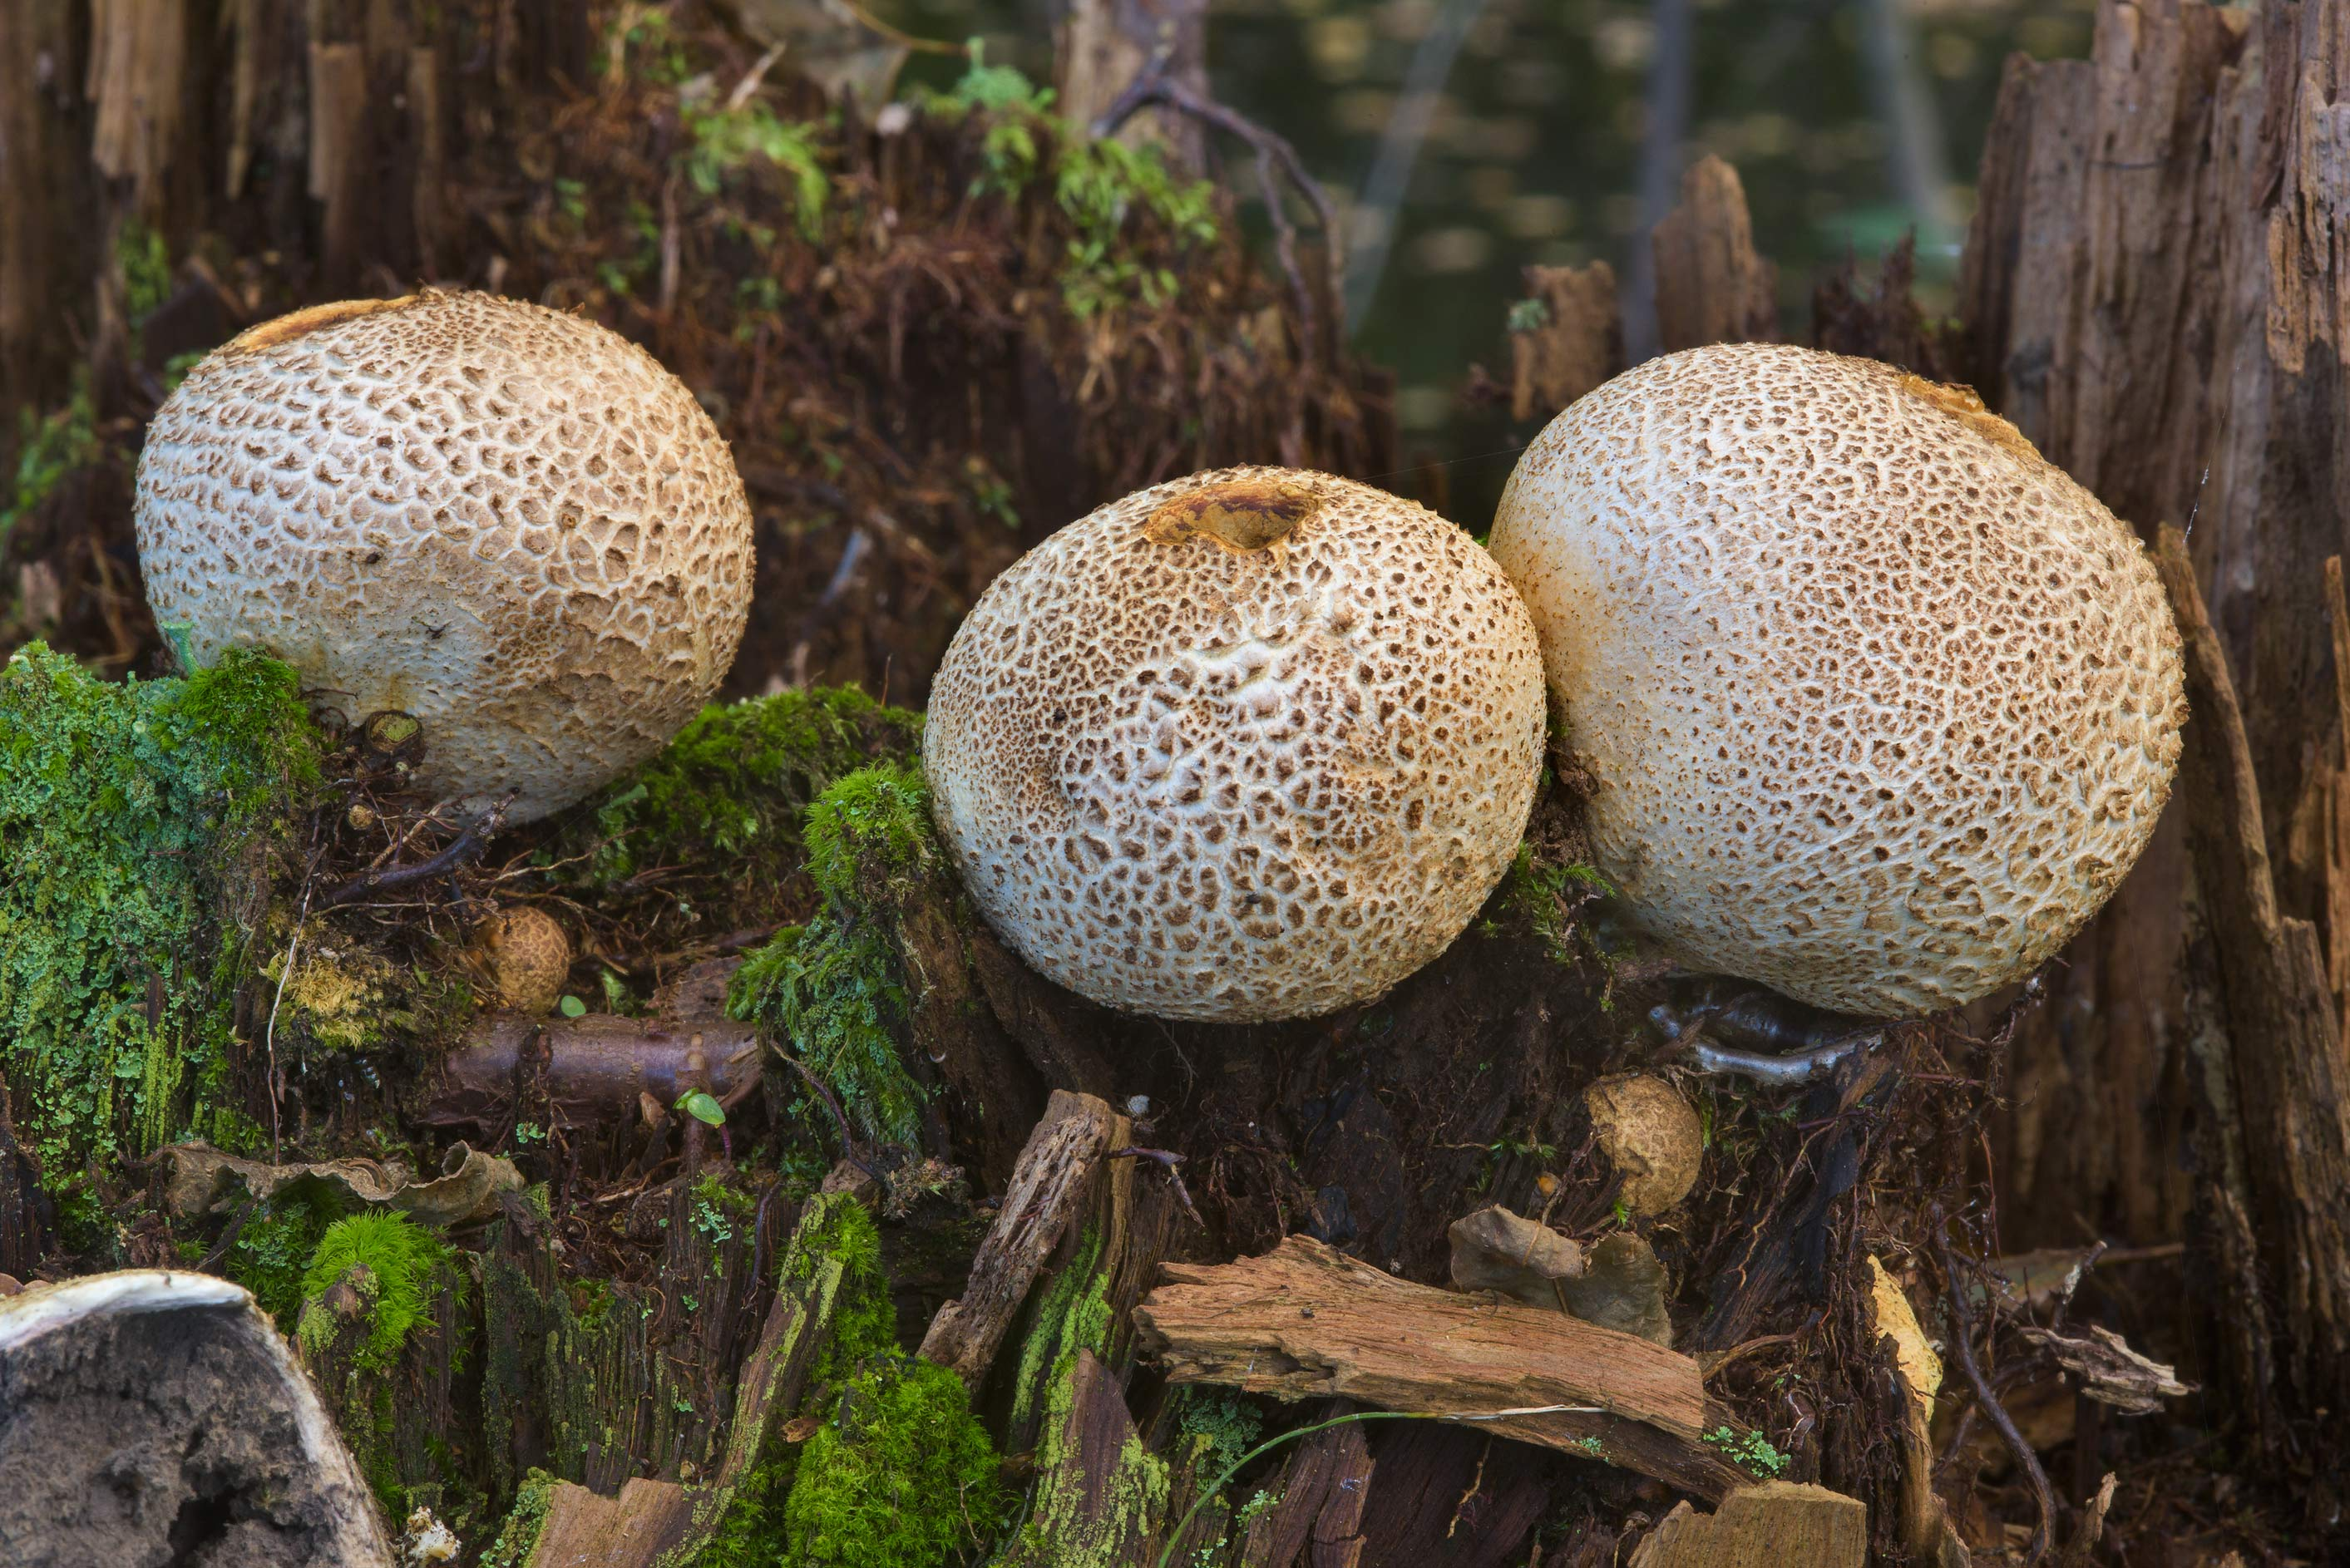 Earthball mushrooms (Scleroderma citrinum) near...Nos, south from St.Petersburg. Russia